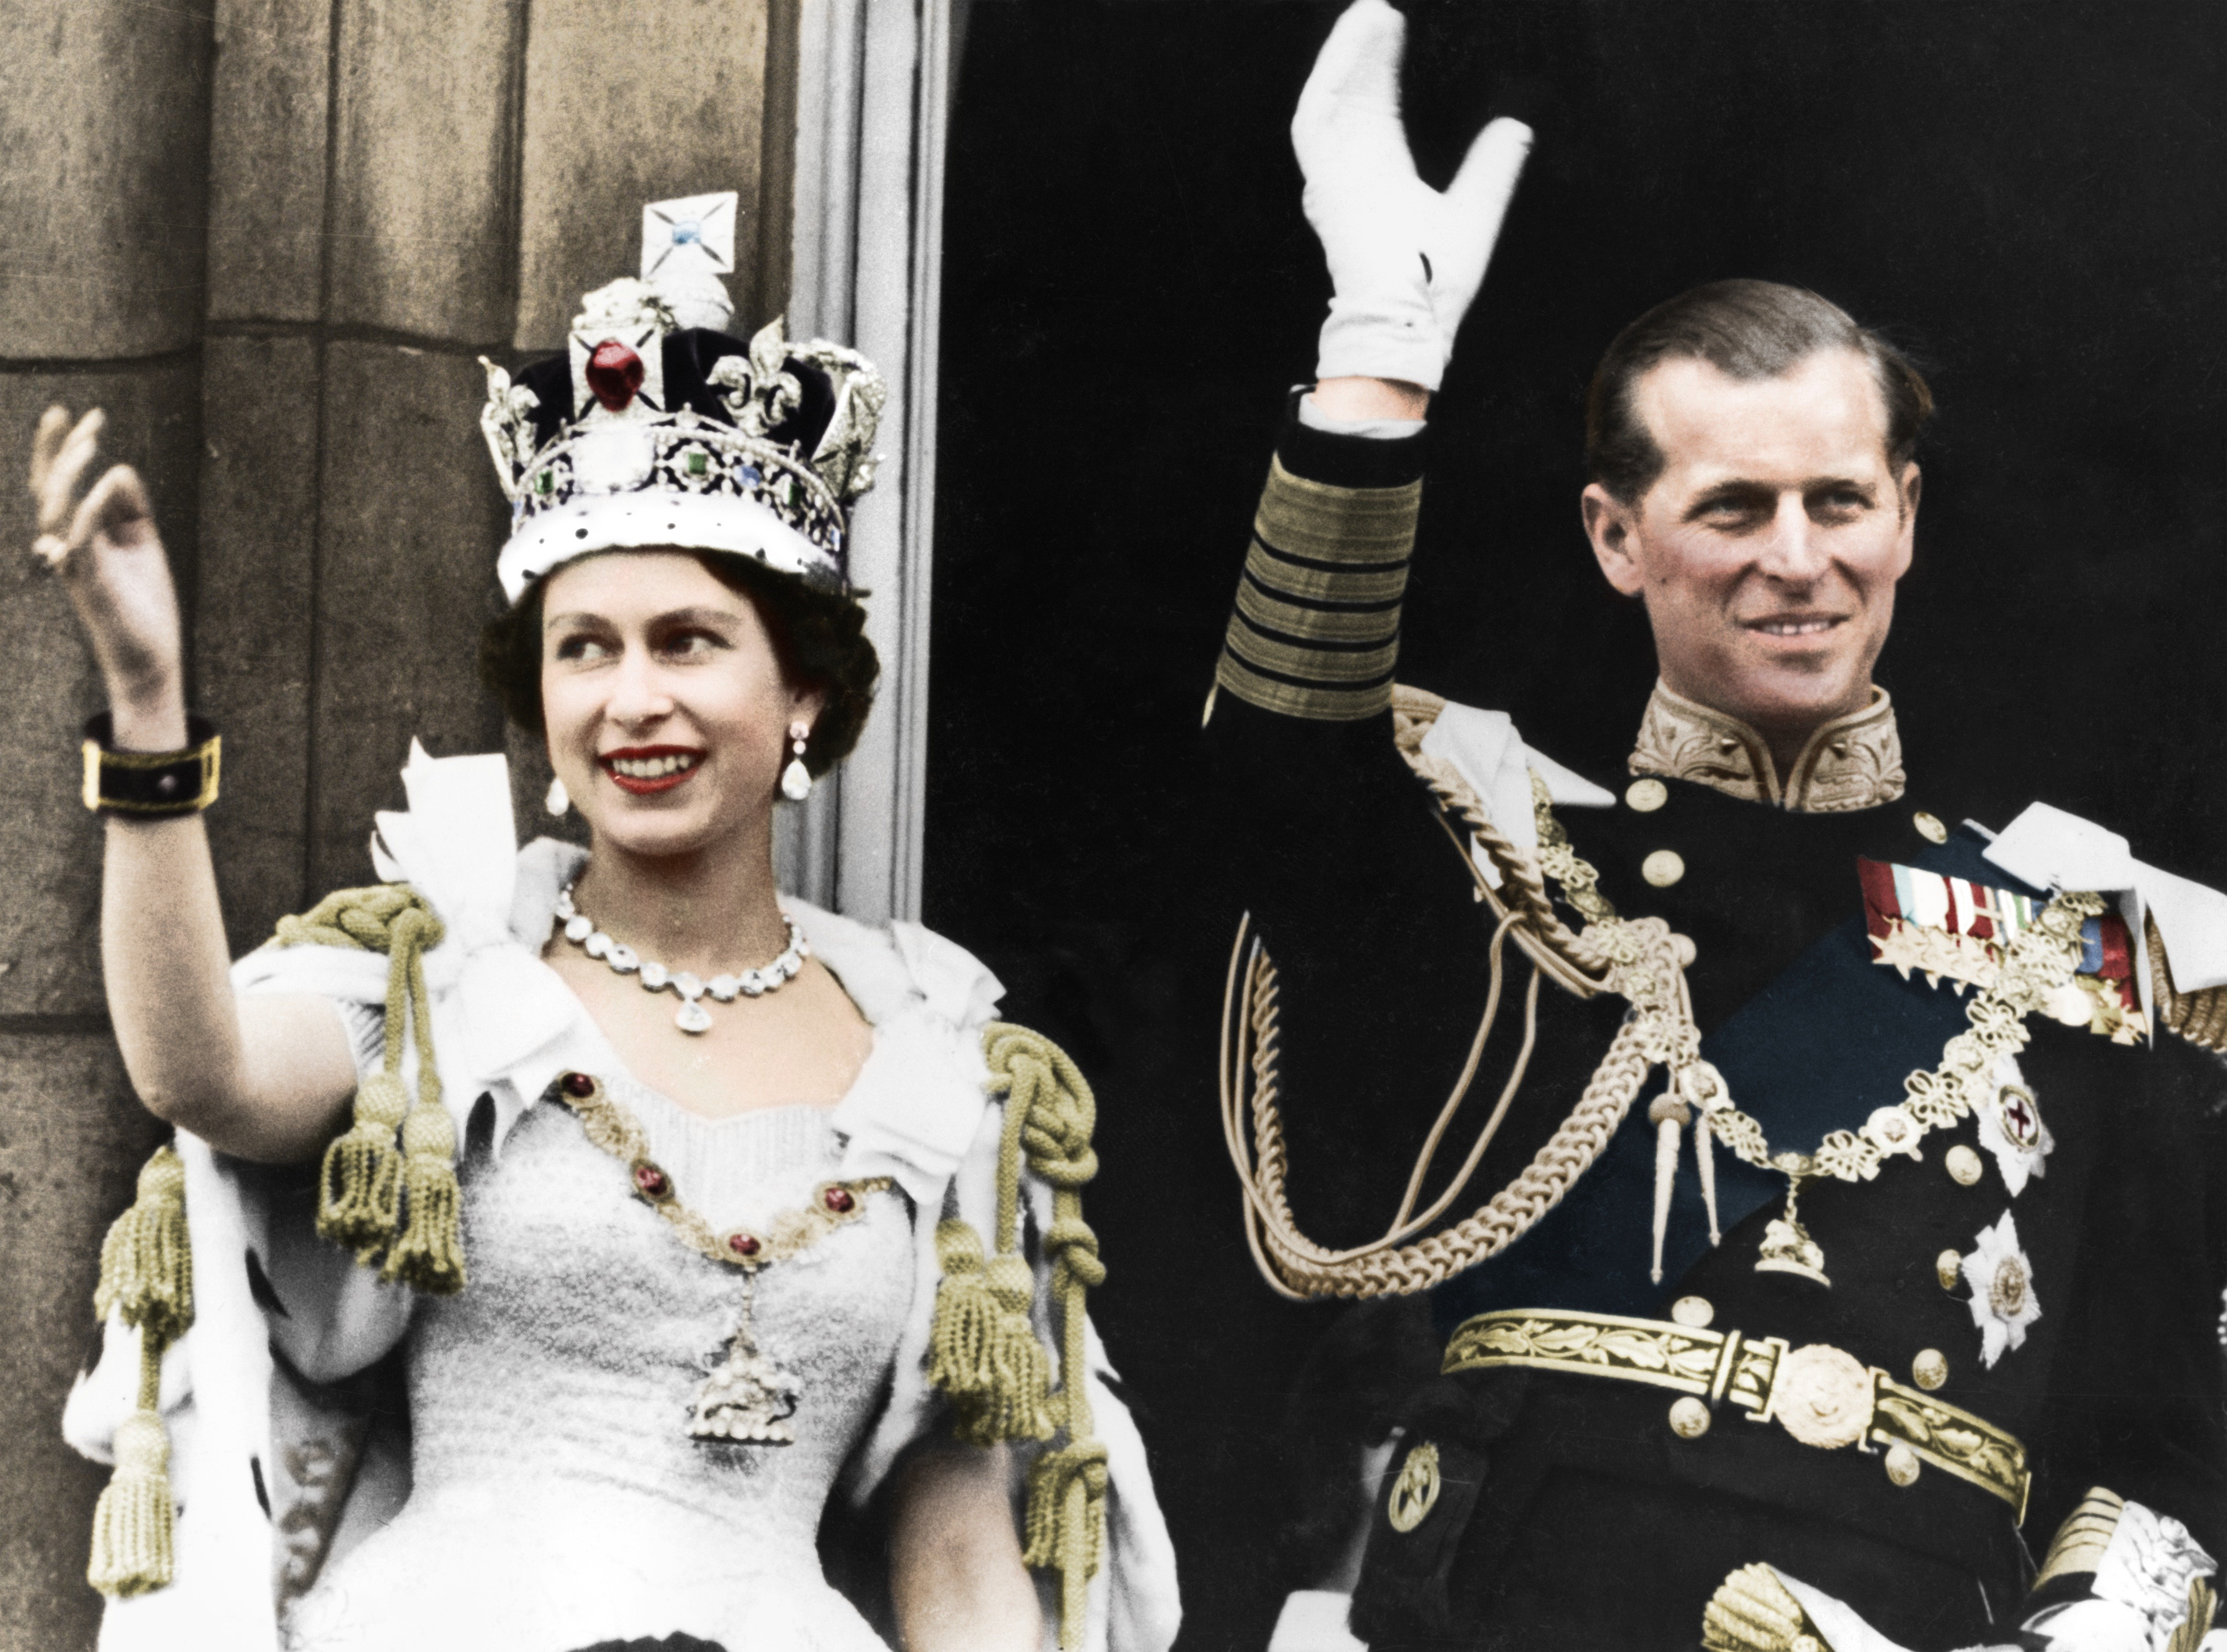 Queen Elizabeth II and the Duke of Edinburgh on the day of their coronation, Buckingham Palace, 1953 | Photo: Getty Images